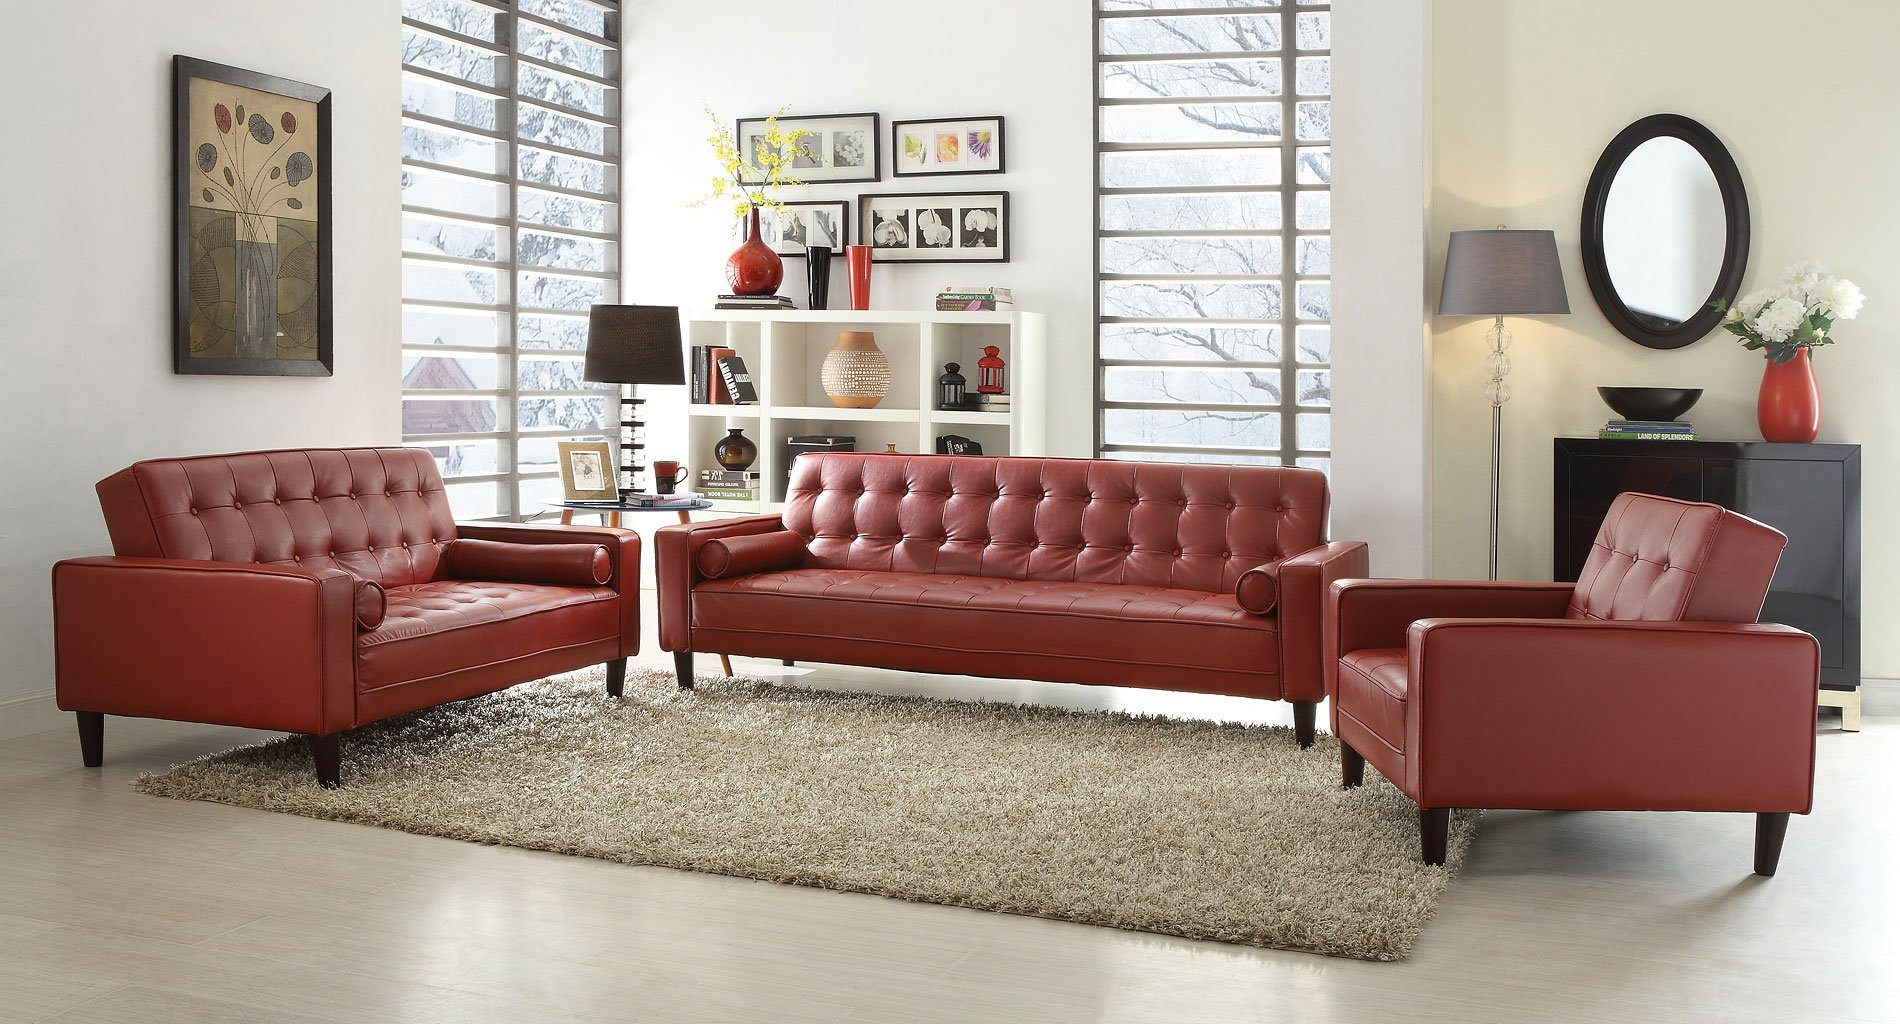 g849 living room set red living room sets living room furniture living room. Black Bedroom Furniture Sets. Home Design Ideas